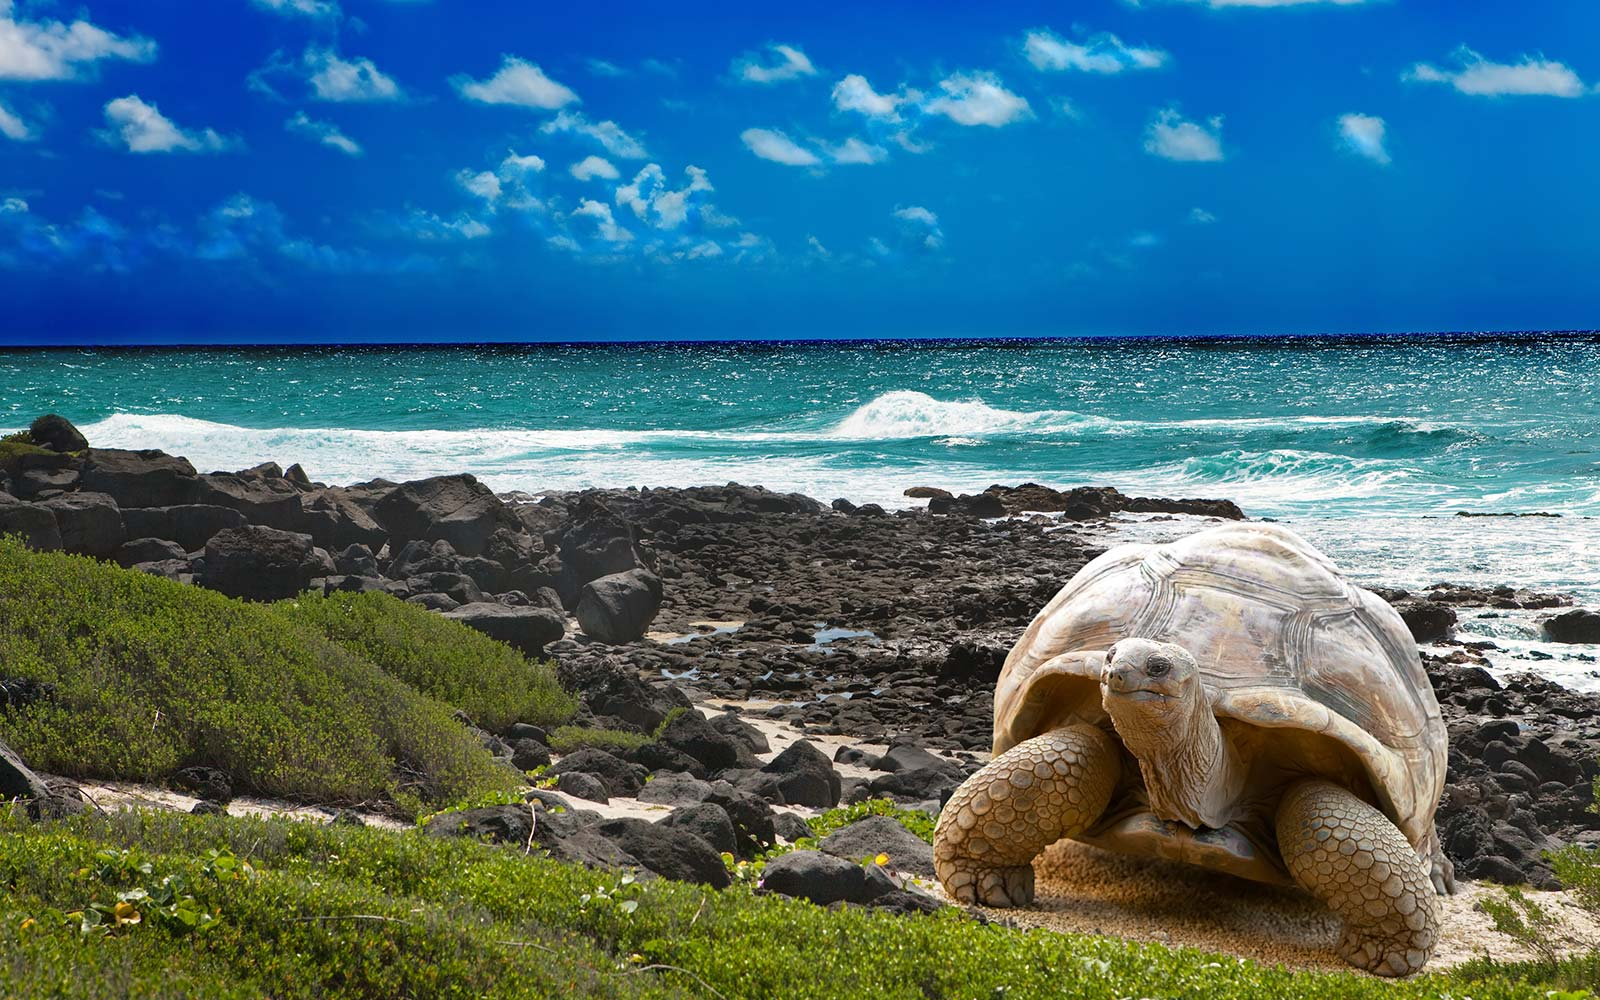 Large turtle  at  sea edge on background of tropical landscape